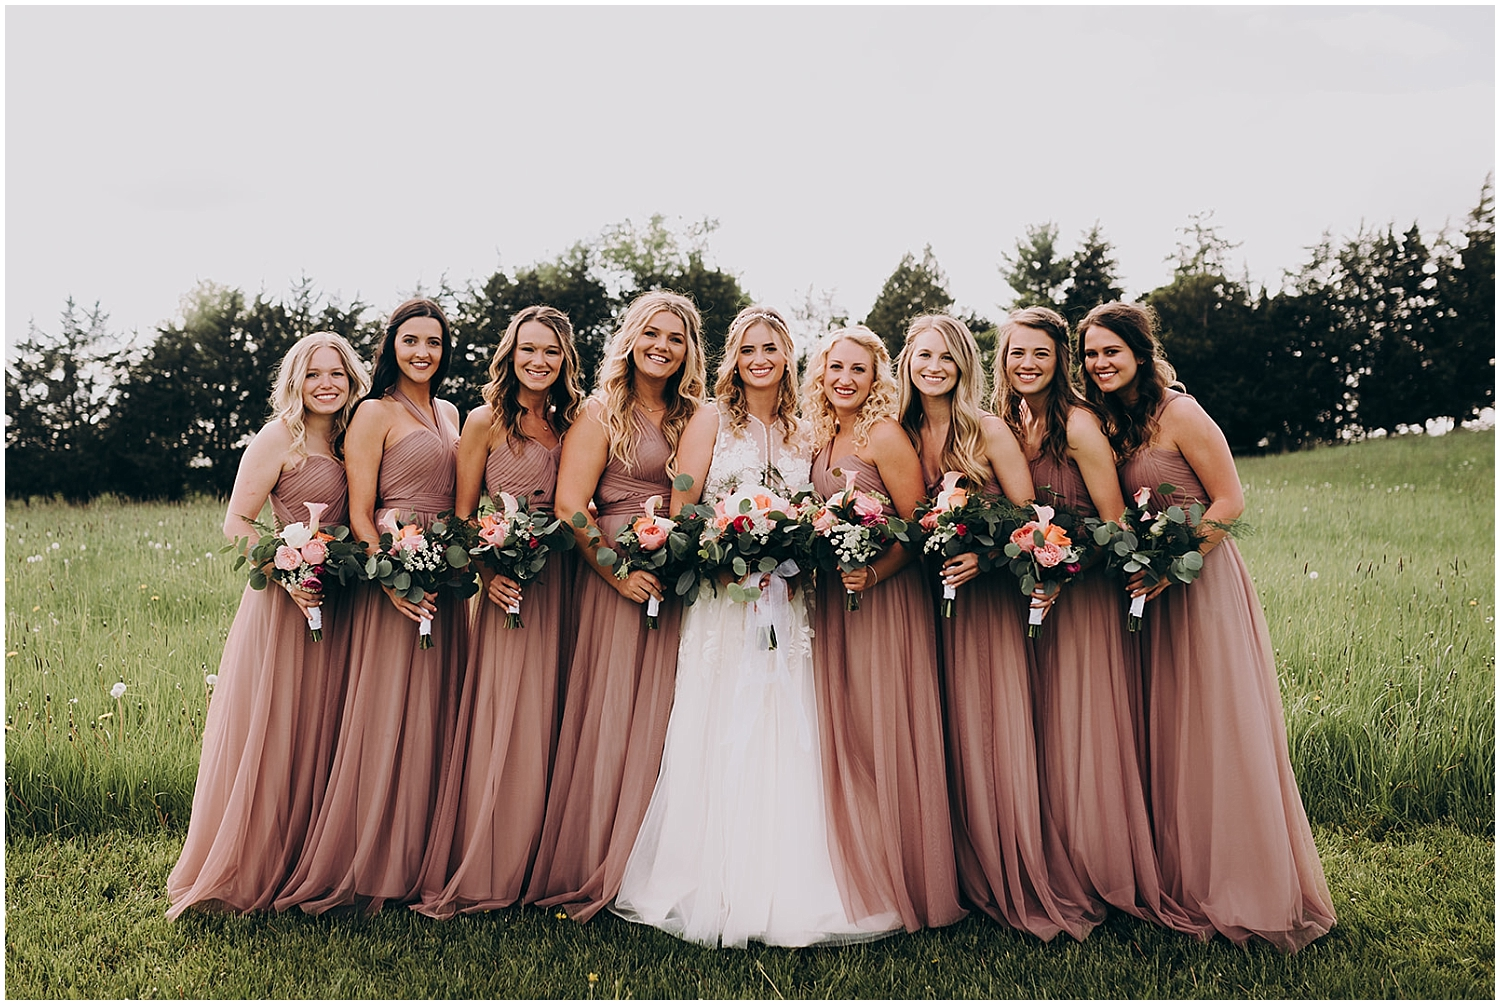 the bride and bridesmaids holding their wedding bouquets